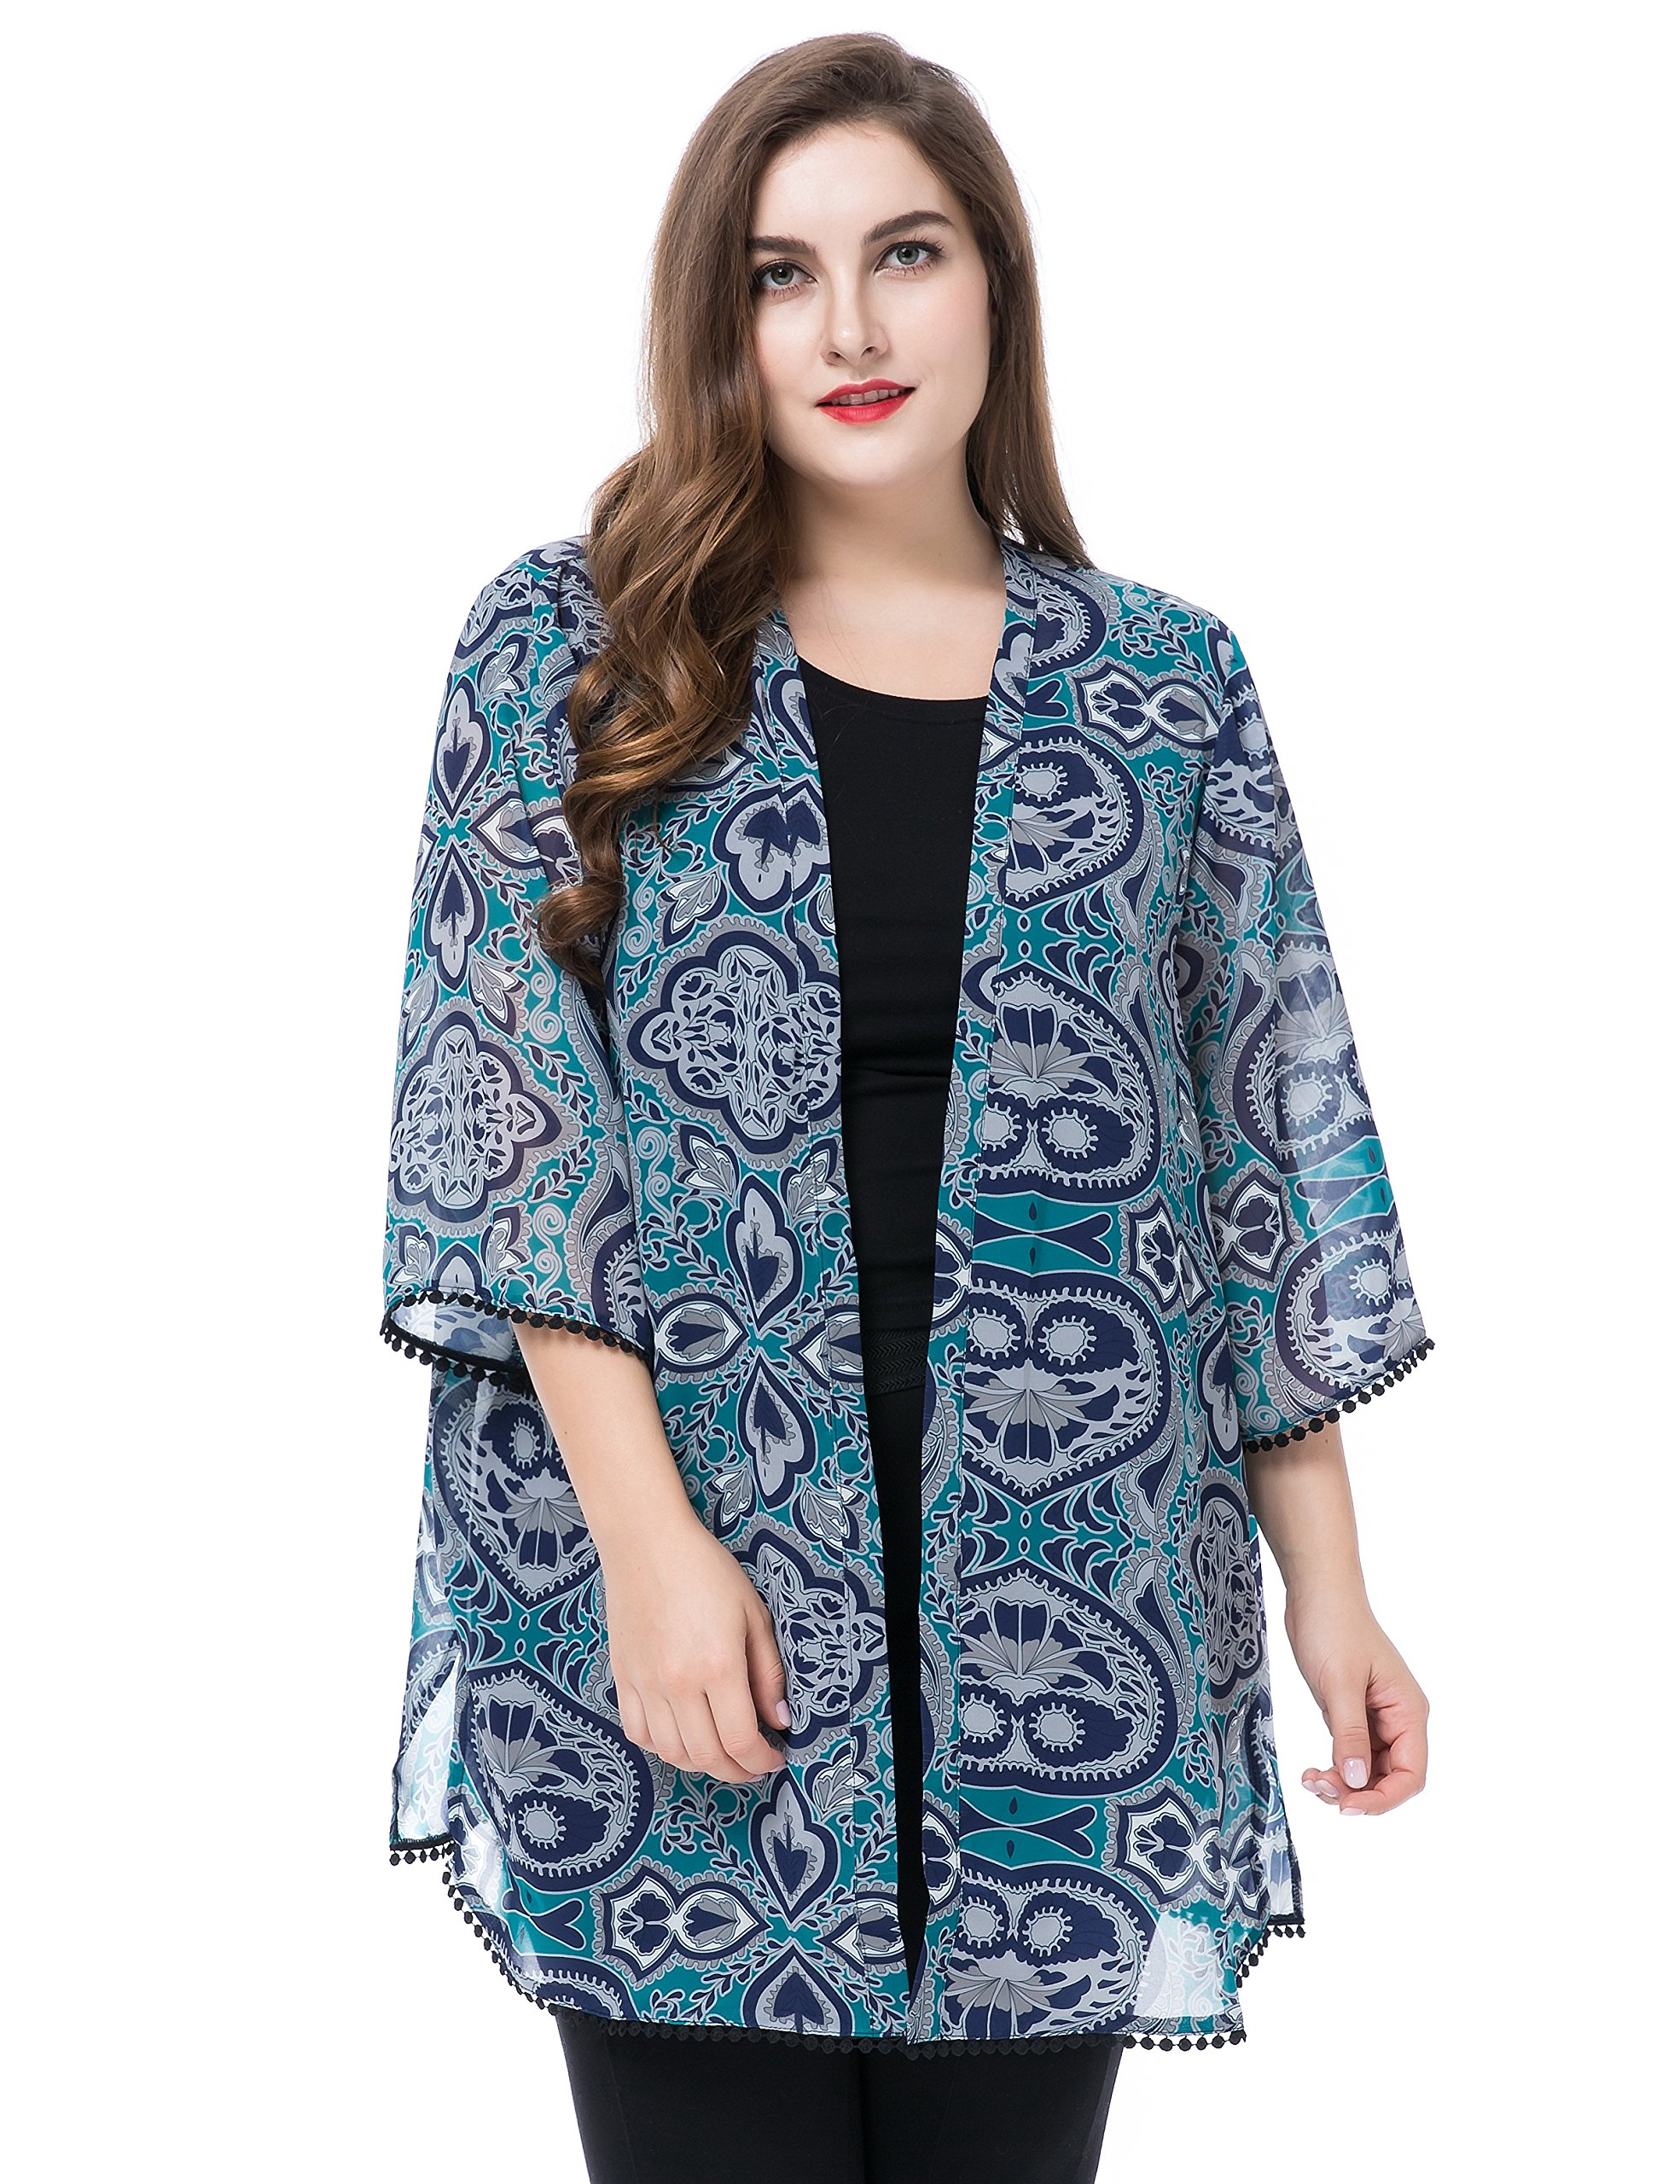 Chicwe Women's Plus Size Floral Printed Chiffon Summer Cover up with Trim Cuff & Hem- Kimono Kaftan Style Open Front Multi Teal 18